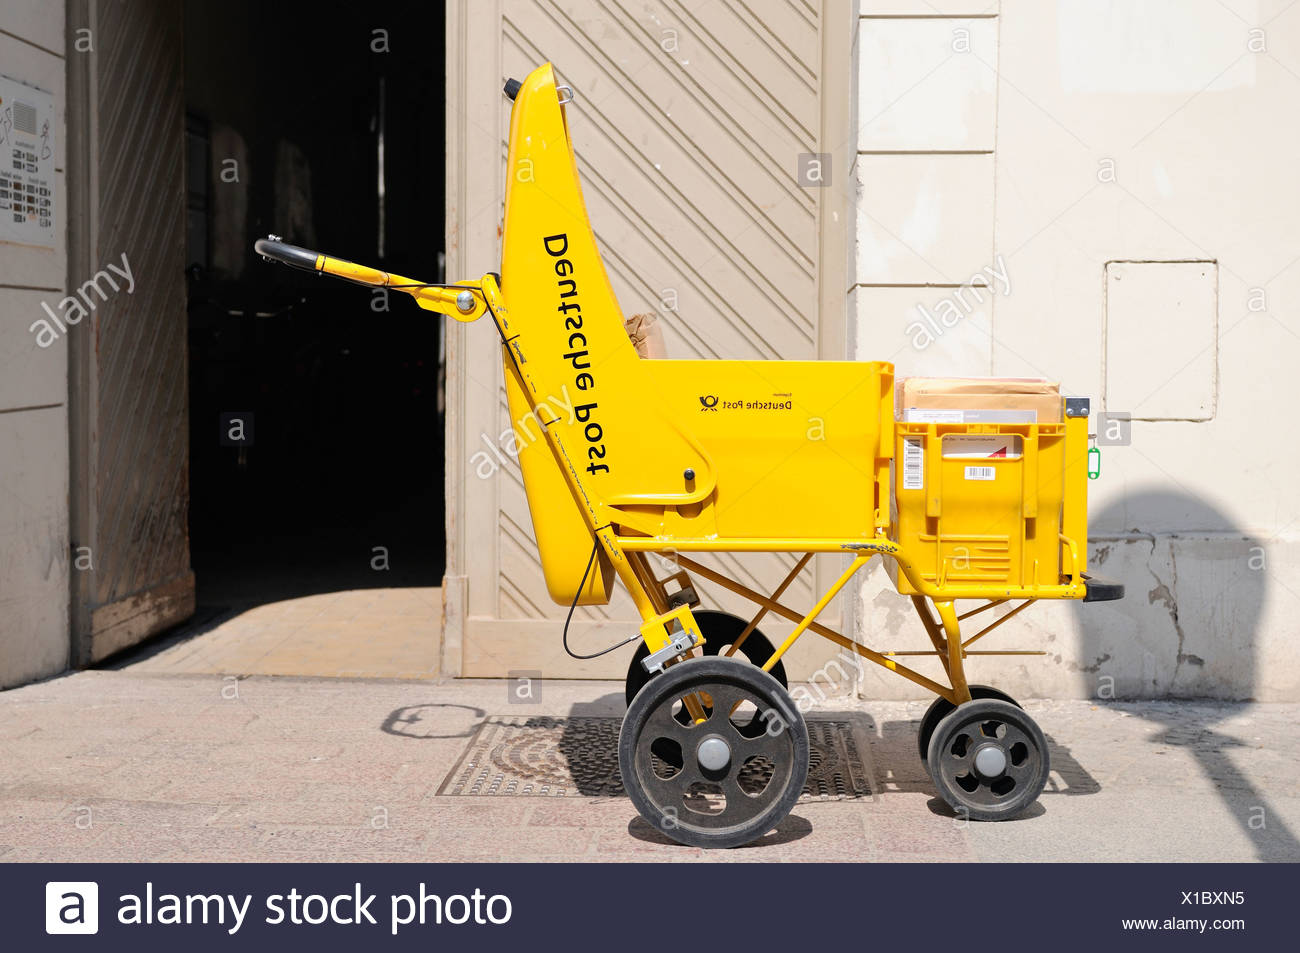 Trolley from the Deutsche Post, Germany, Europe - Stock Image